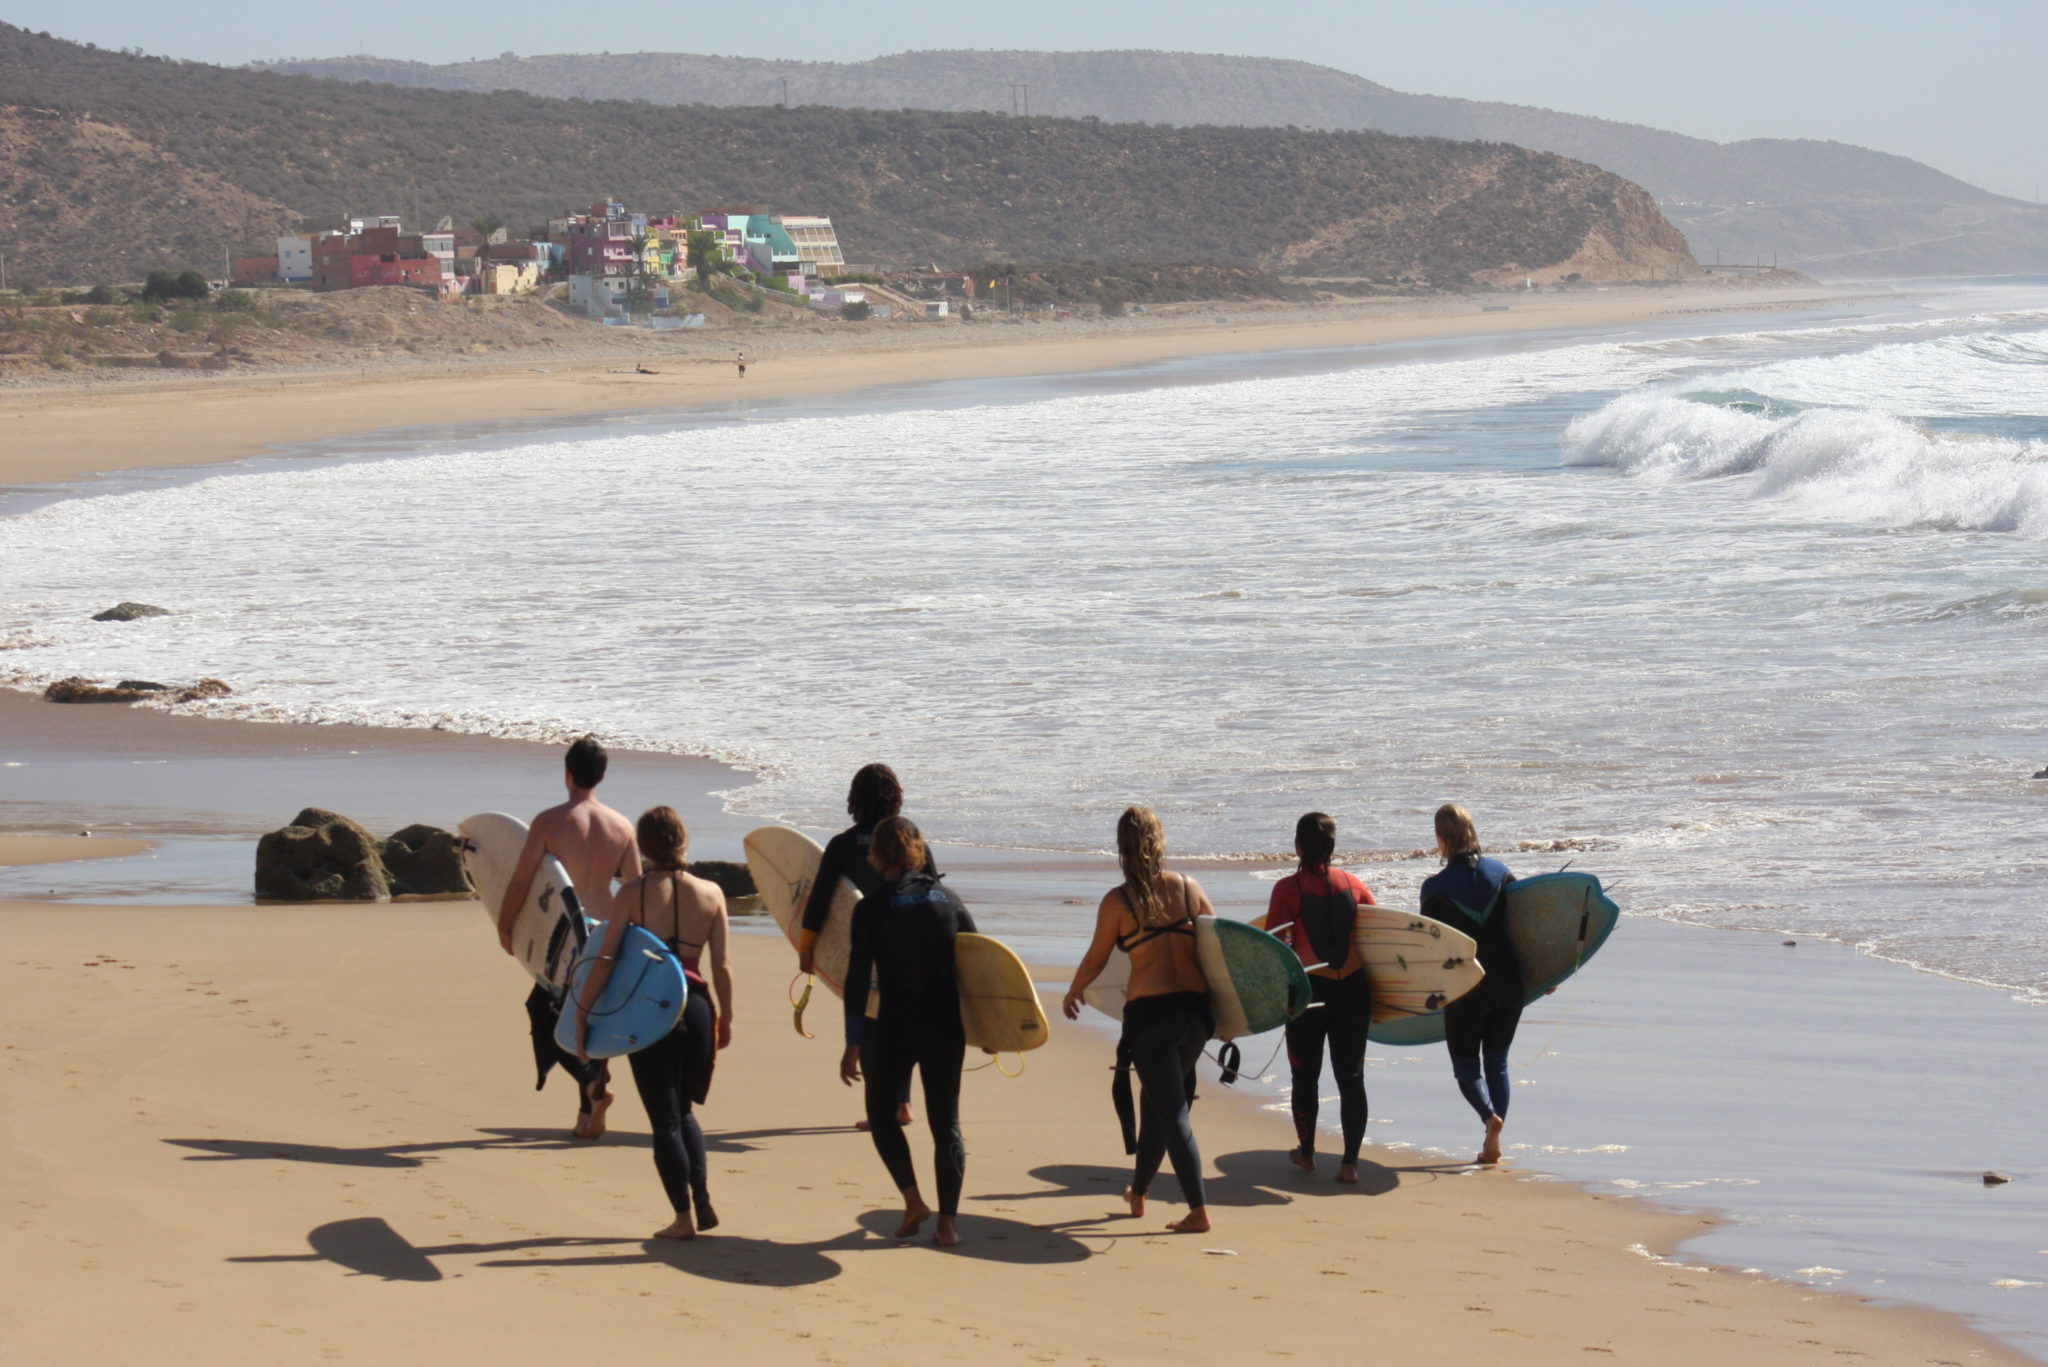 One week intermediate Tamraght surfing holiday in Morocco